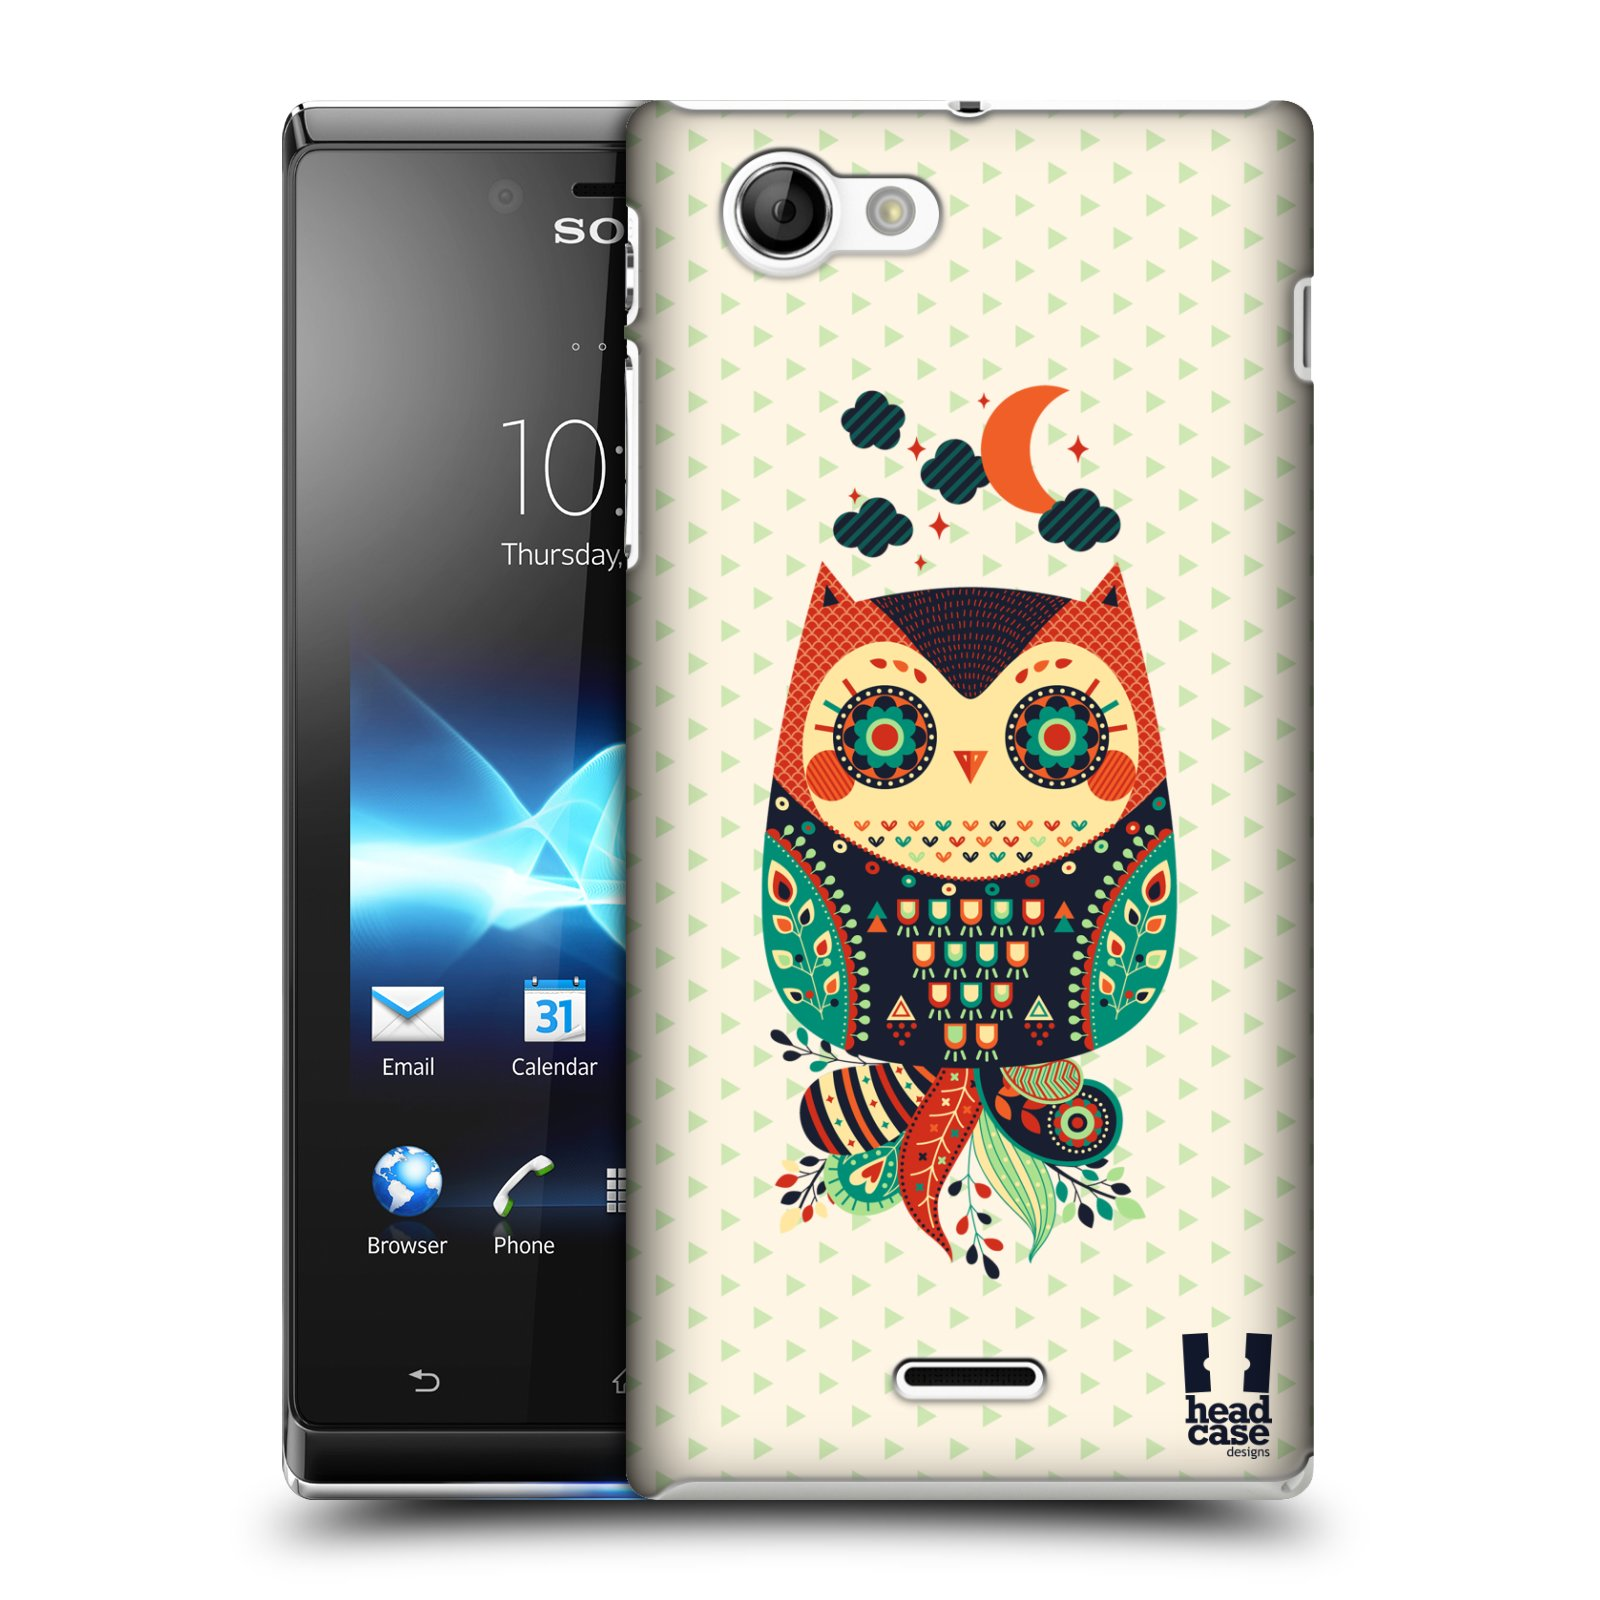 HEAD CASE DESIGNS NIGHTFALL OWLS CASE COVER FOR SONY XPERIA J ST26i